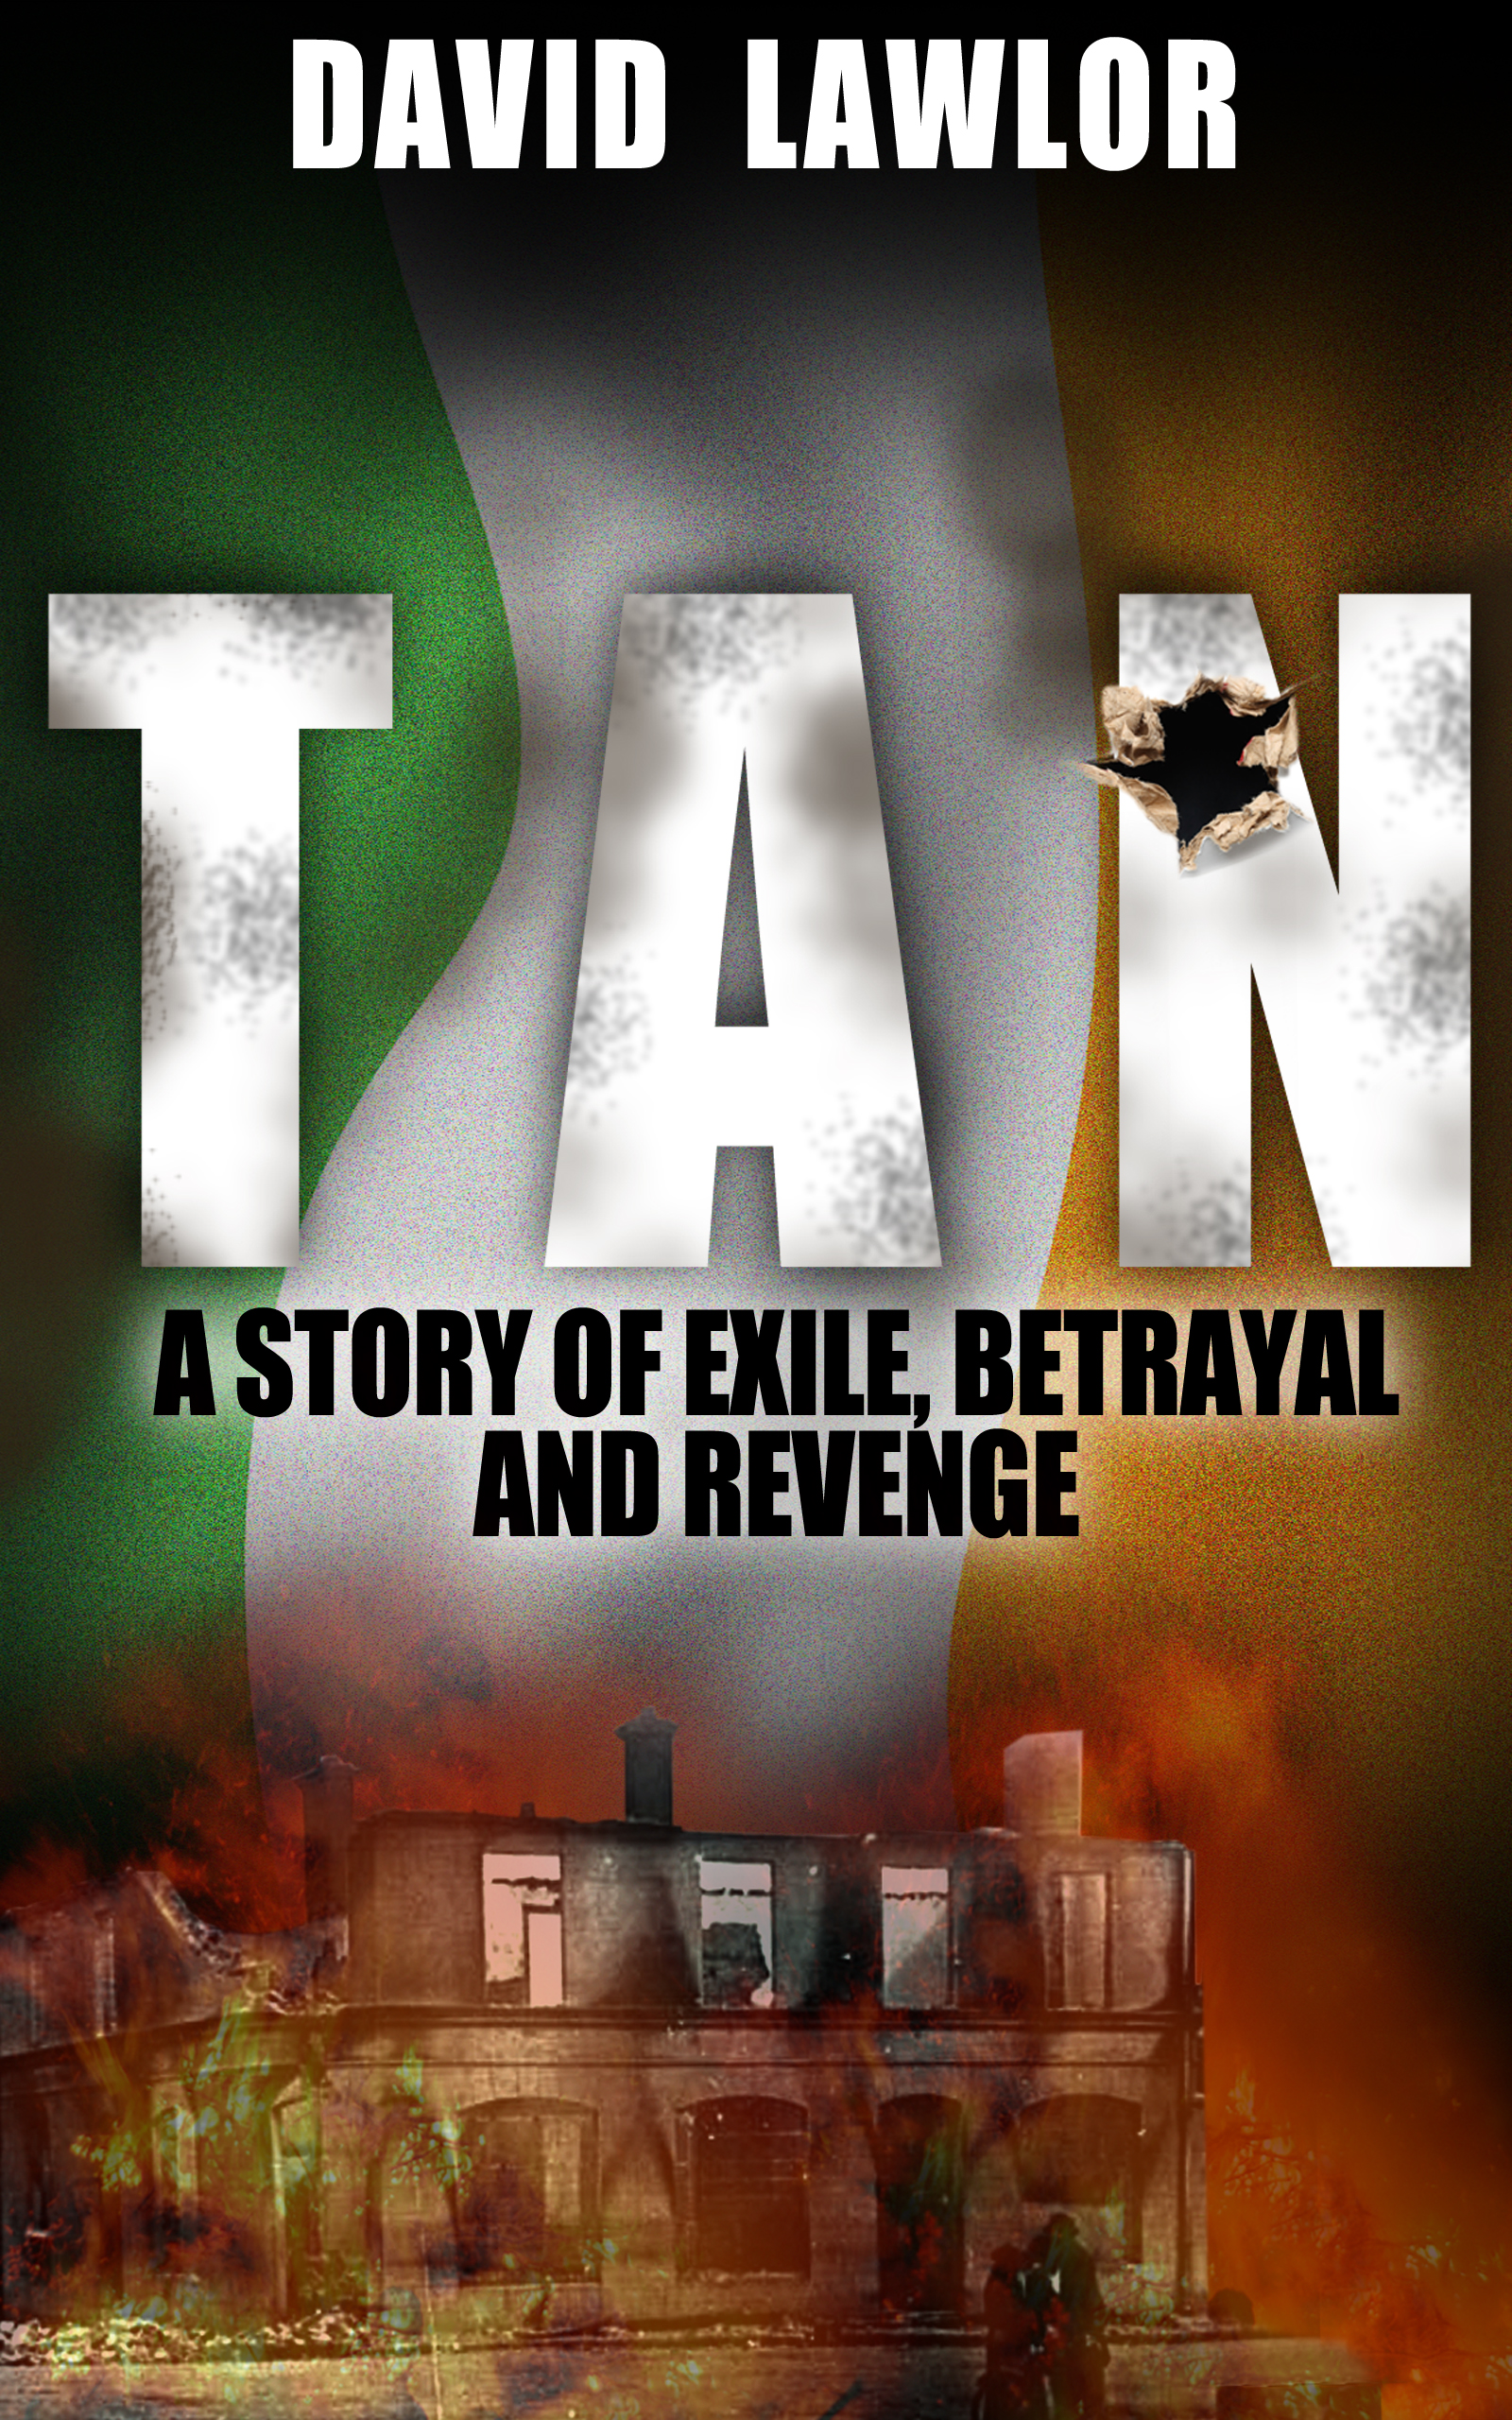 Tan - A Story of Exile, Betrayal and Revenge, an Ebook by David Lawlor